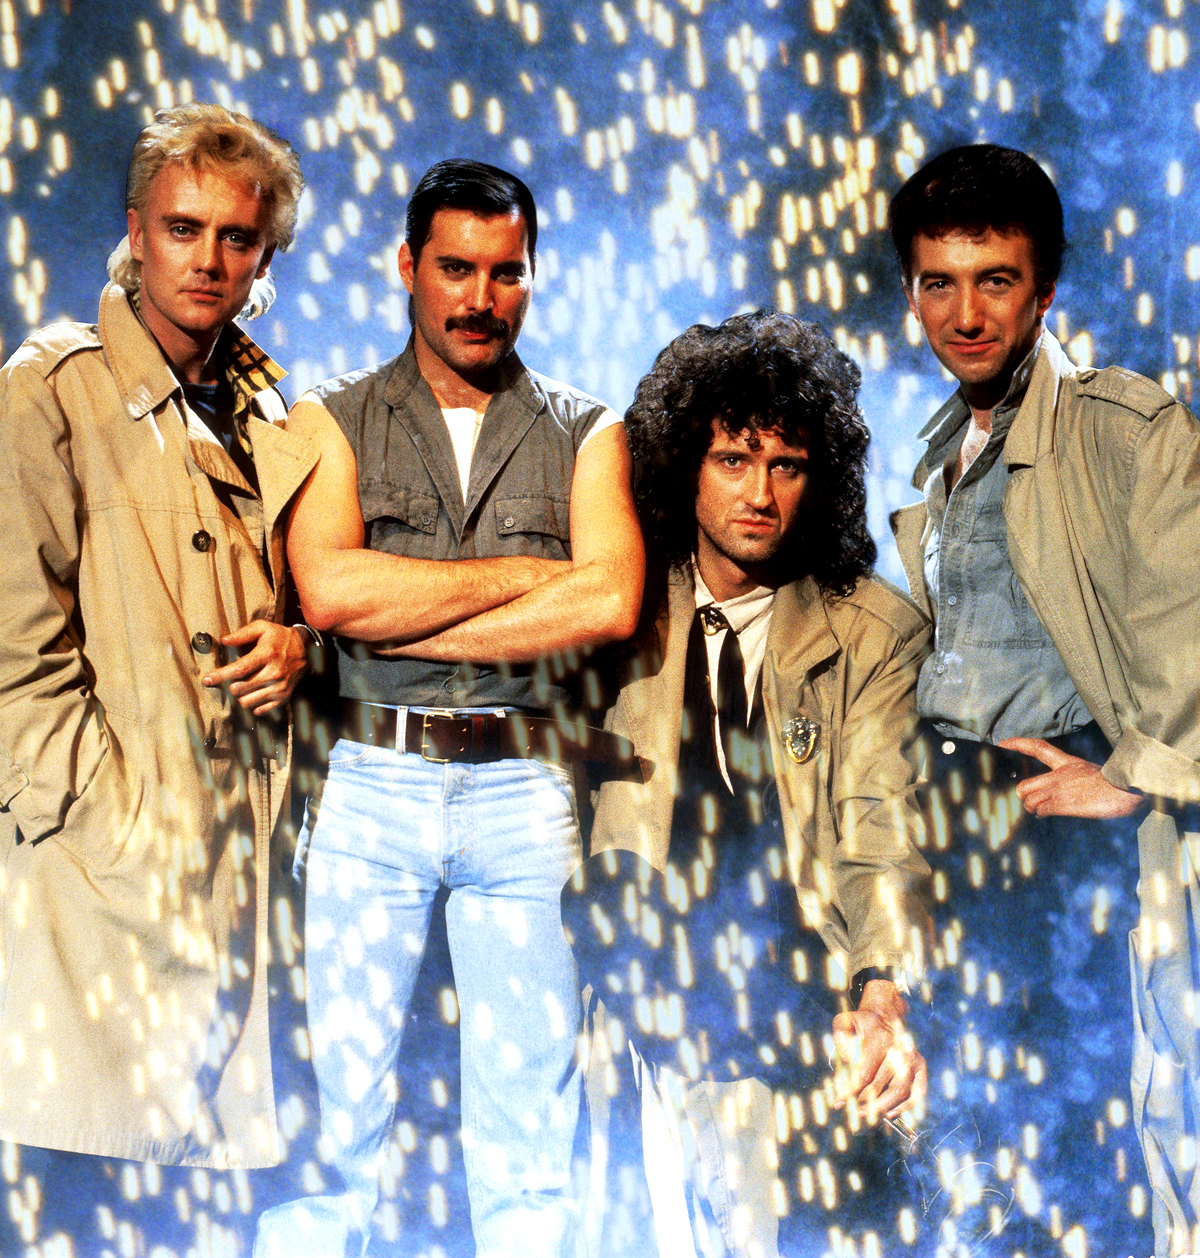 The British rock band Queen